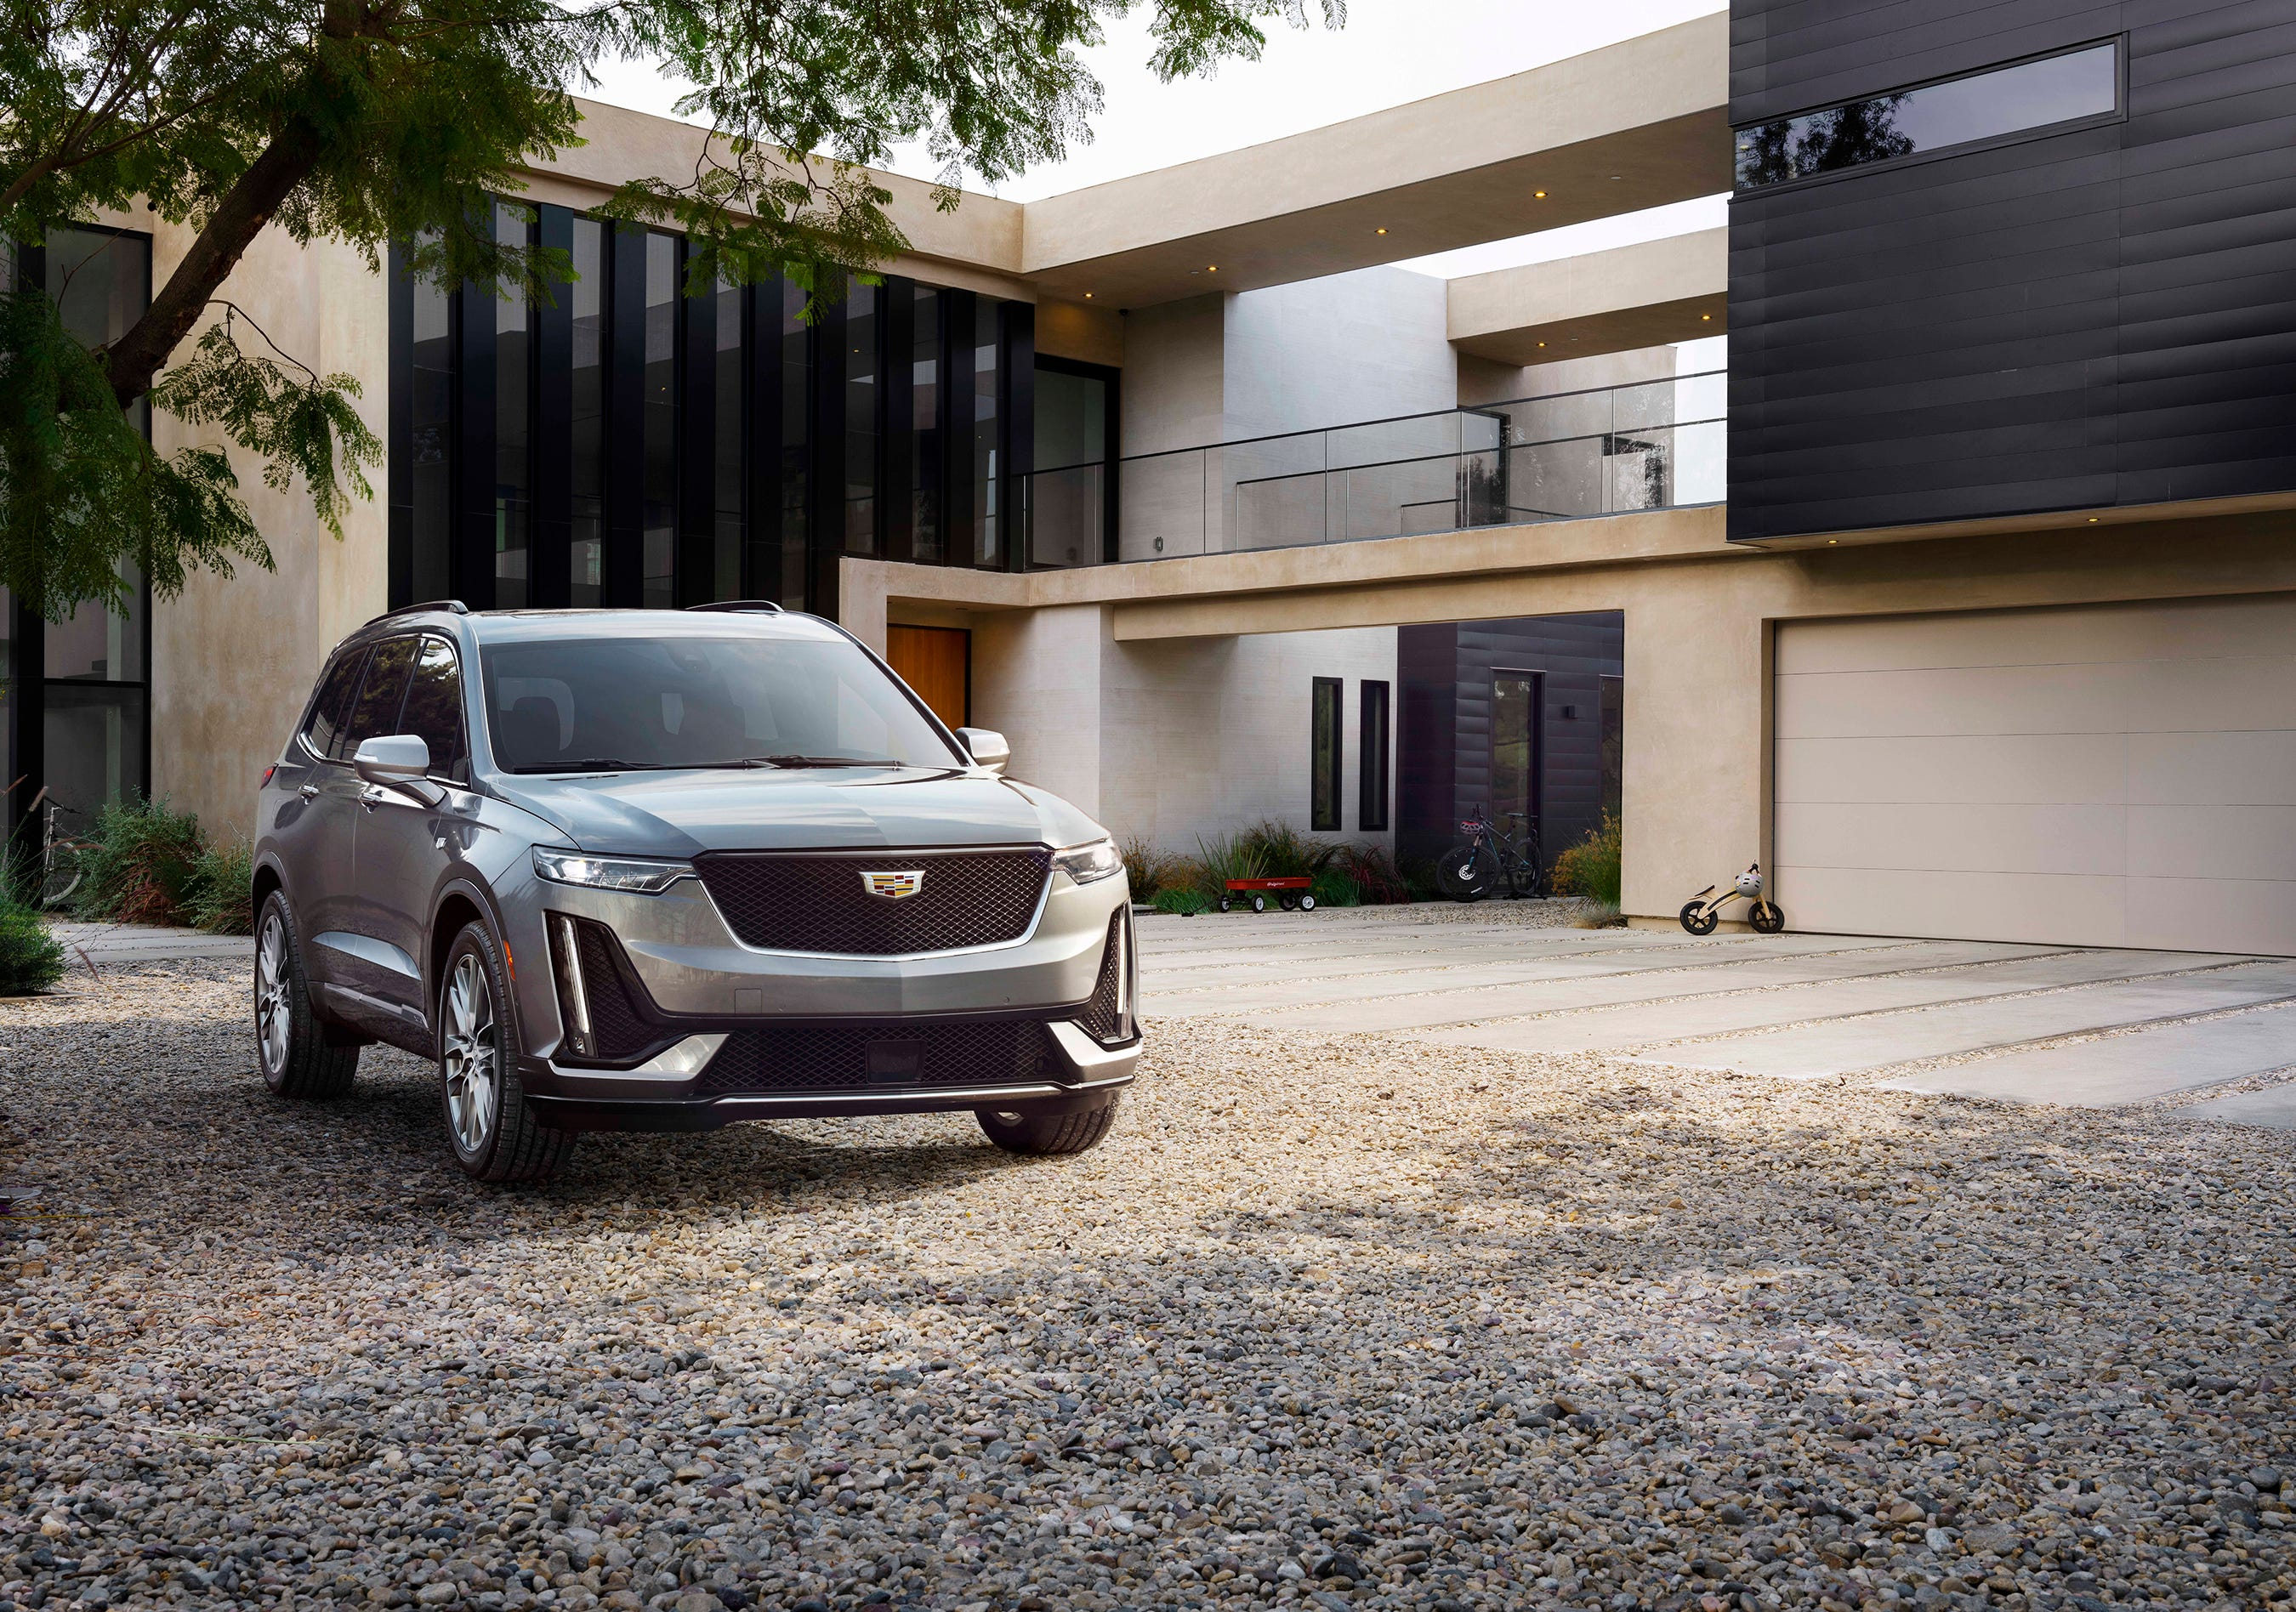 Cadillac rolls out Escalade's 'little brother,' the XT6, at Detroit auto show